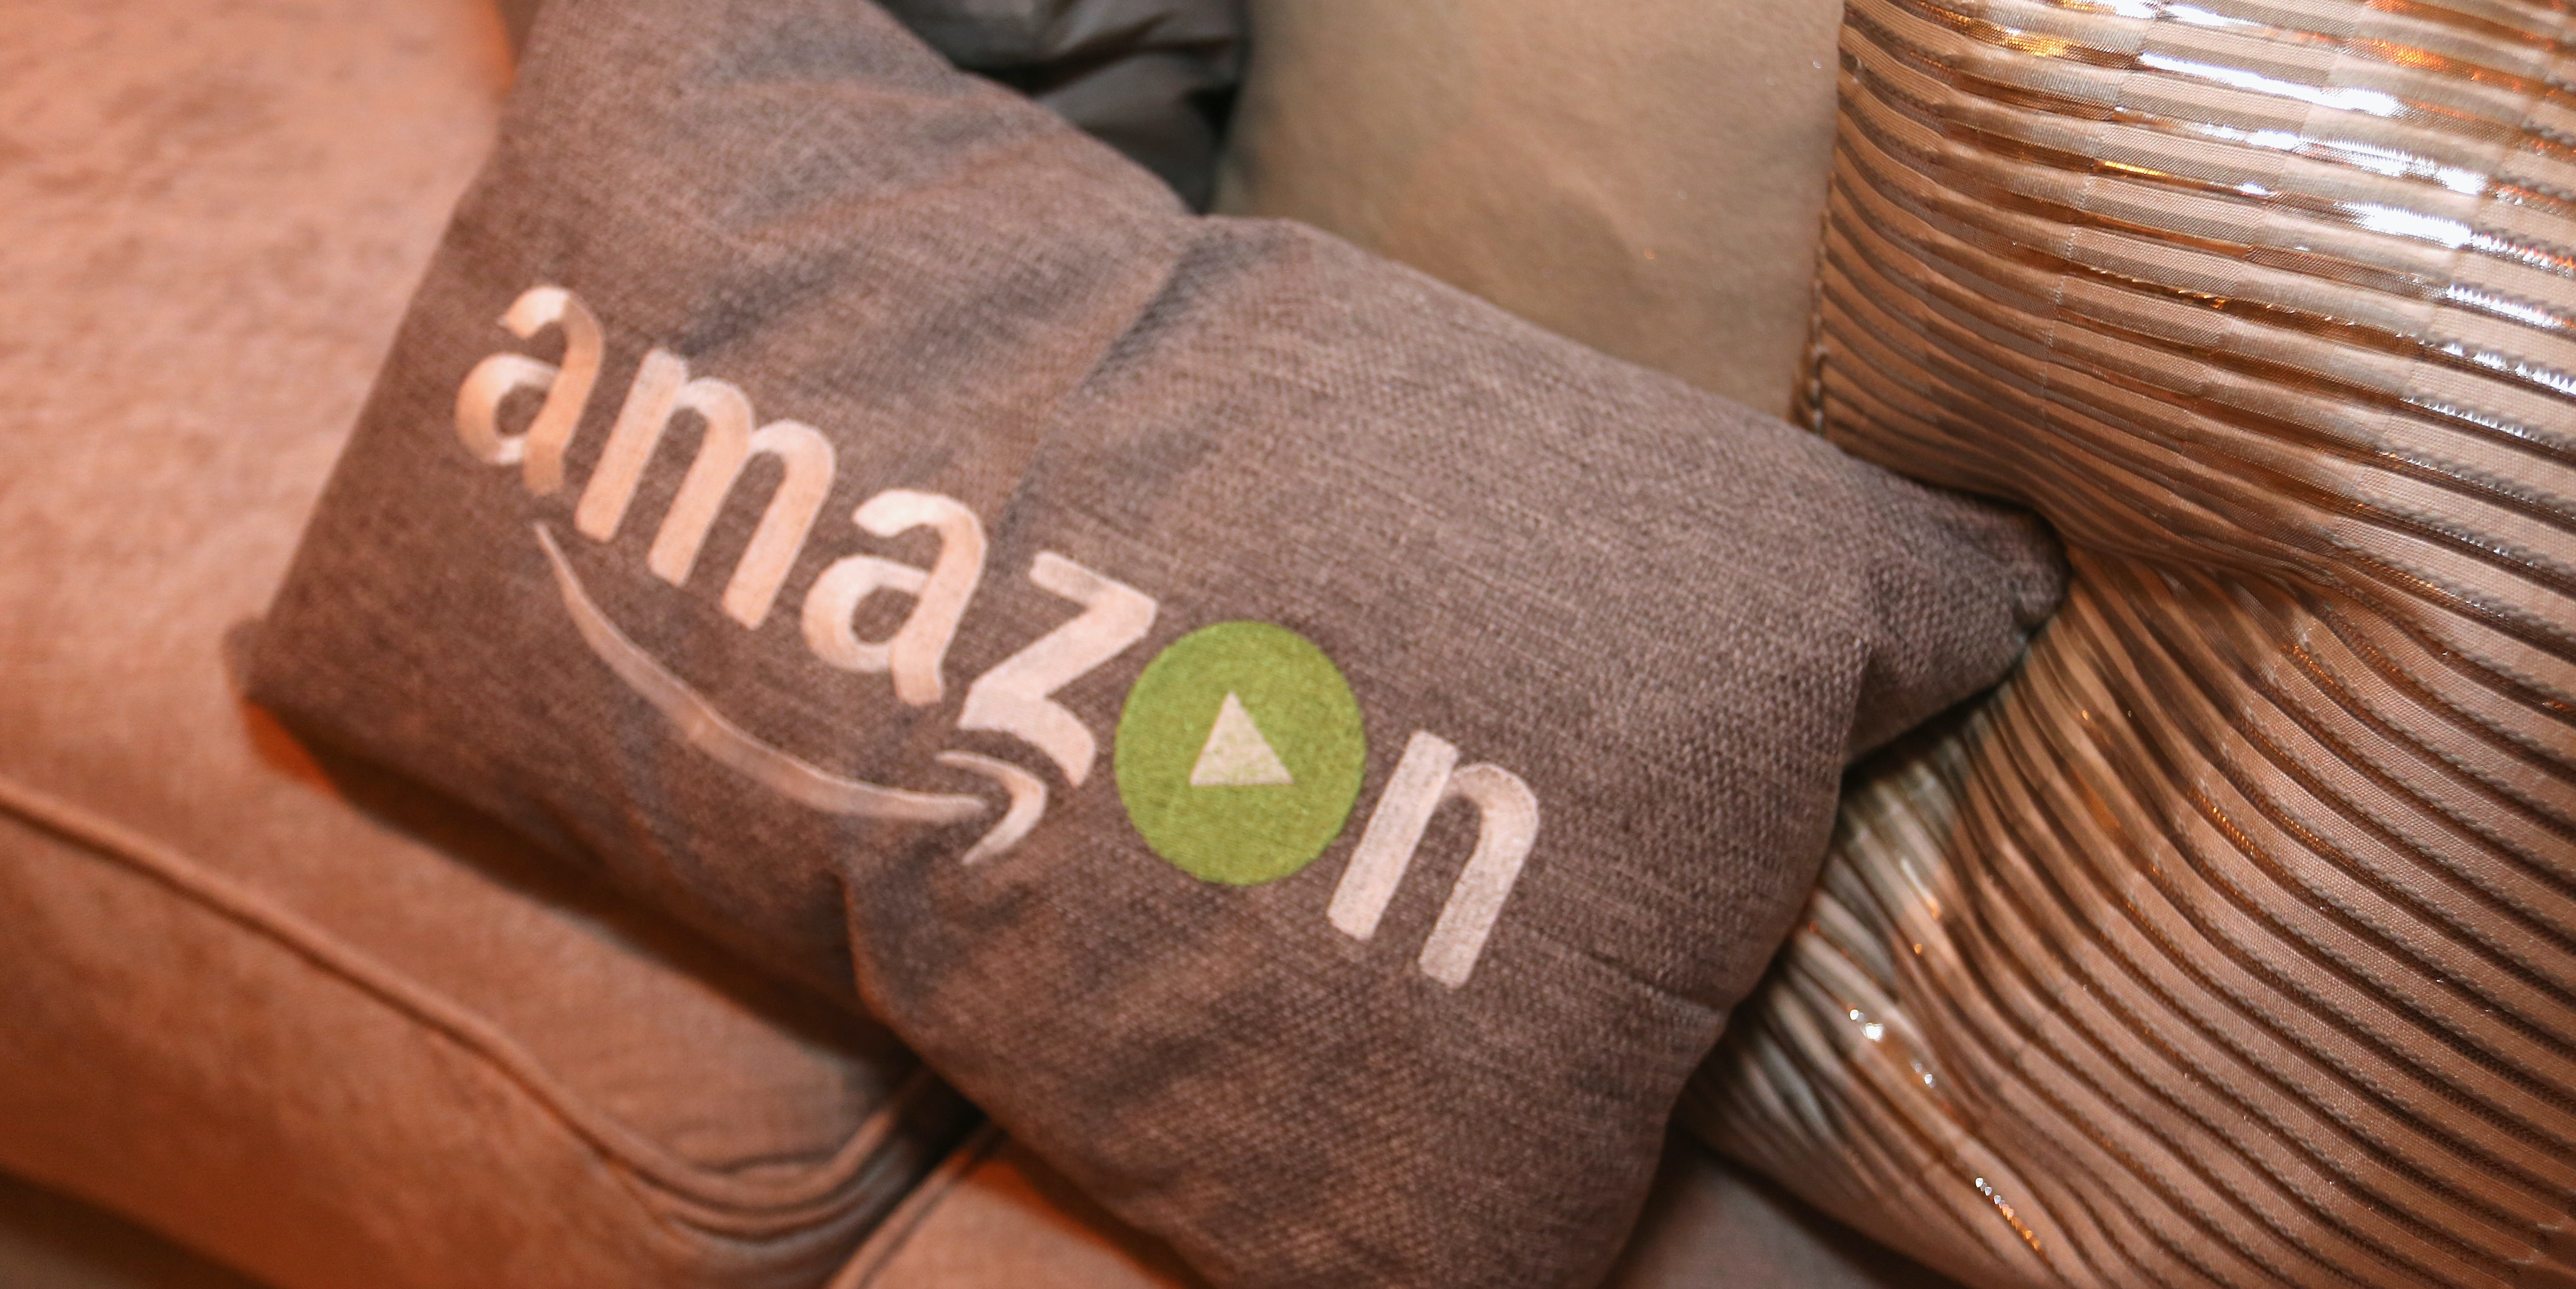 BEVERLY HILLS, CA - JANUARY 10:  Pillows emblazoned with the Amazon logo are displayed at Amazon's Golden Globe Awards Celebration at The Beverly Hilton Hotel on January 10, 2016 in Beverly Hills, California.  (Photo by Rachel Murray/Getty Images for Amazon Studios)